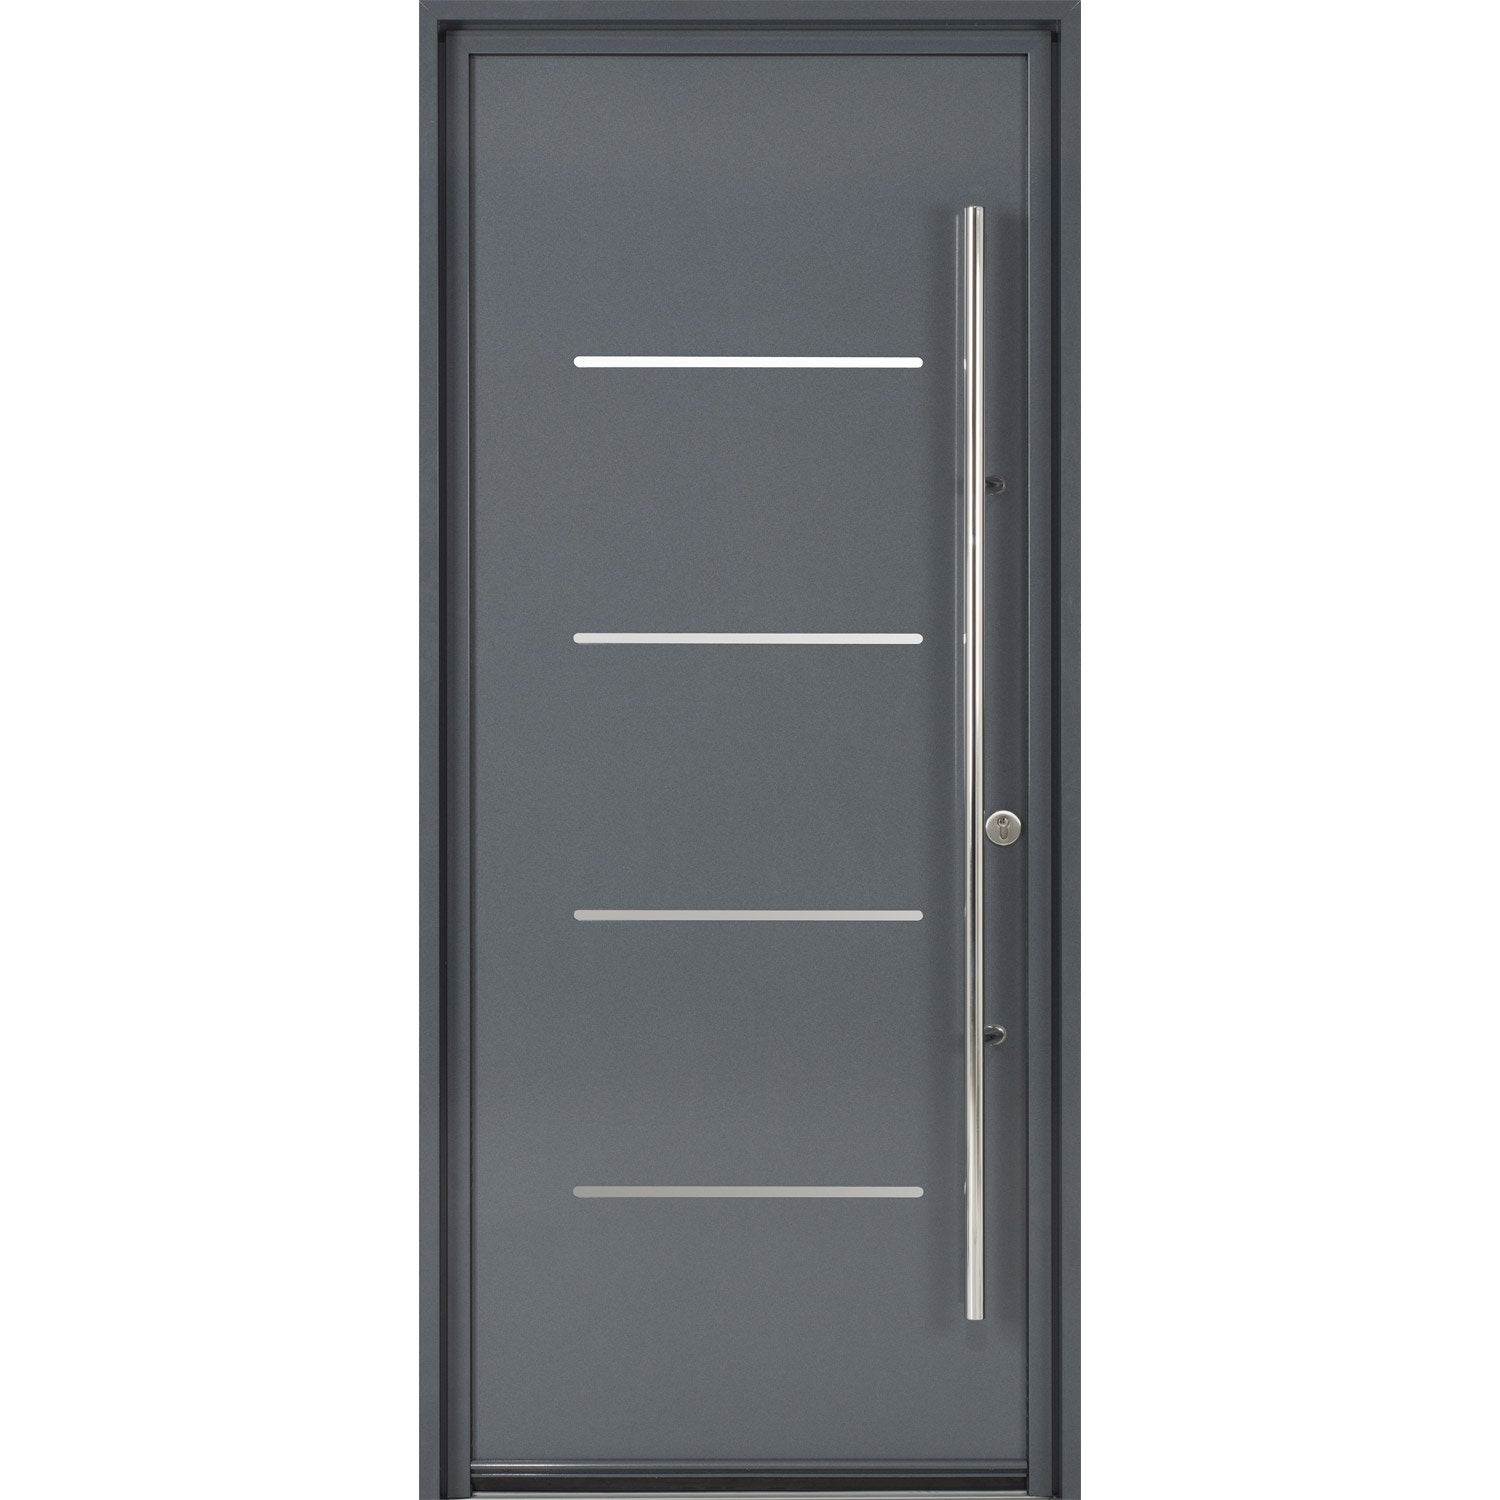 porte d 39 entr e sur mesure en aluminium strate excellence leroy merlin. Black Bedroom Furniture Sets. Home Design Ideas